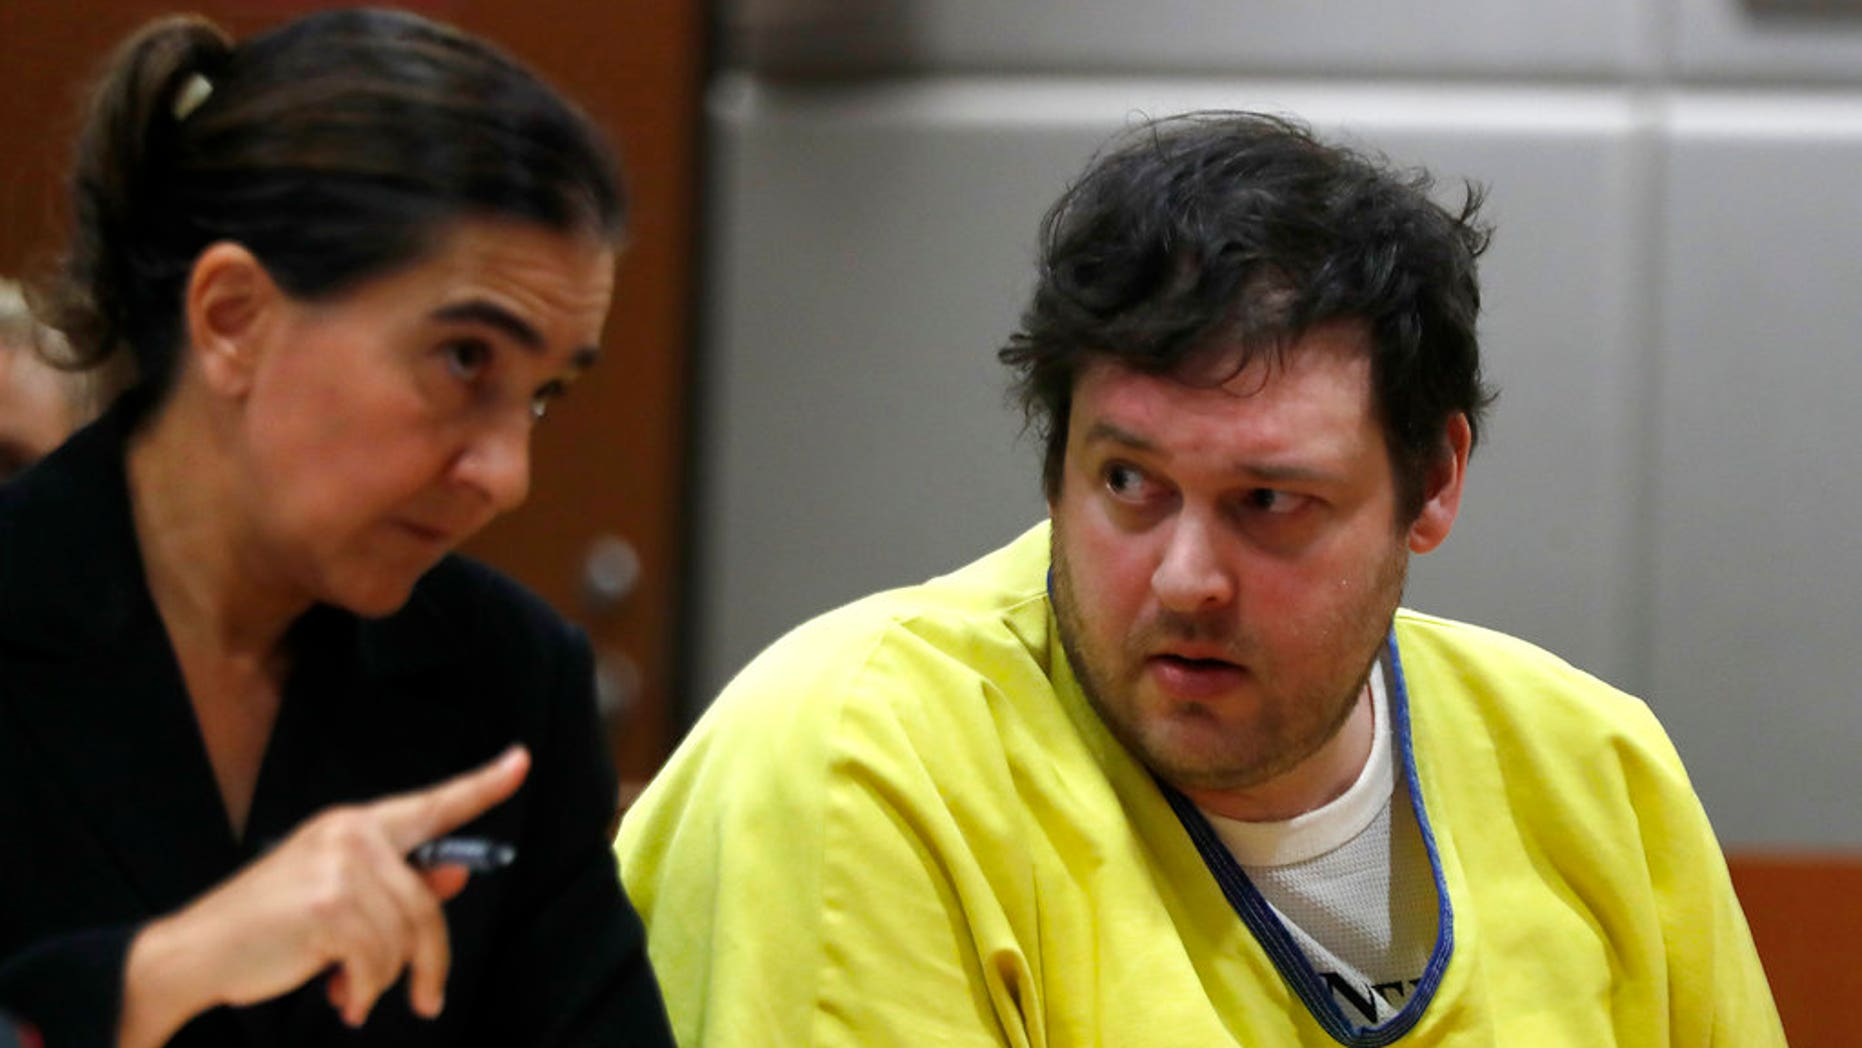 Blake Leibel, right, was sentenced to life in prison without the possibility of parole, in Los Angeles, June 26, 2018.